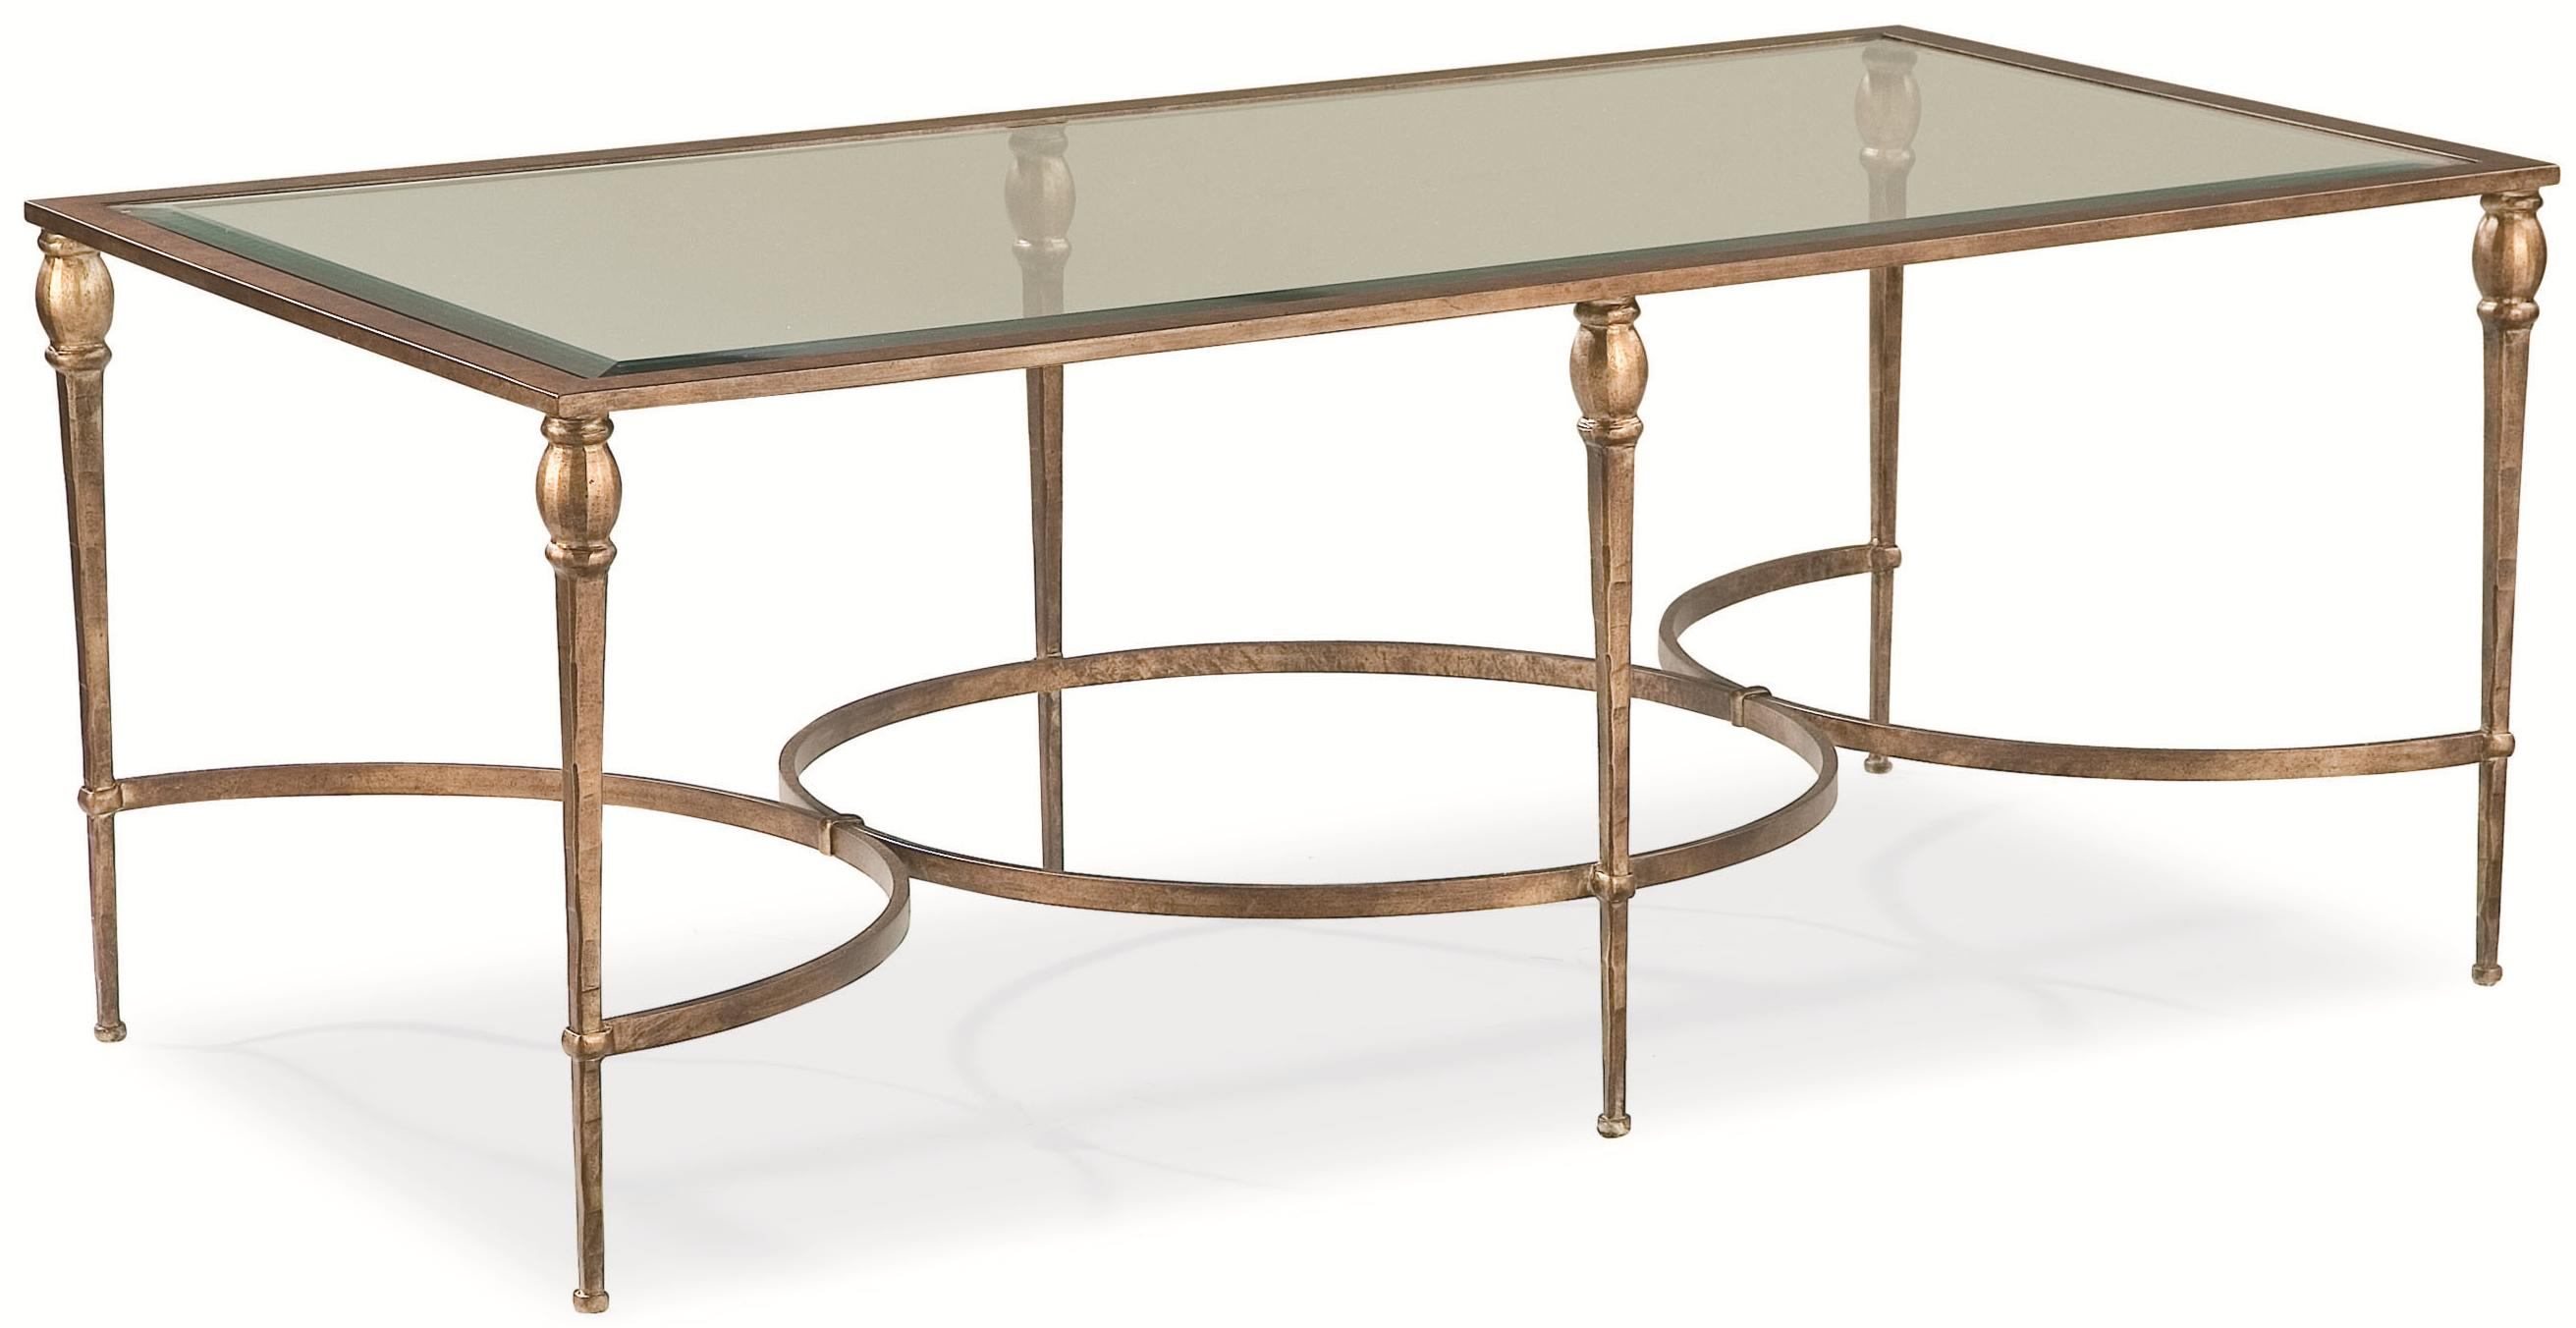 Thomasville Stiletto 131 Rectangular Coffee Table w Glass